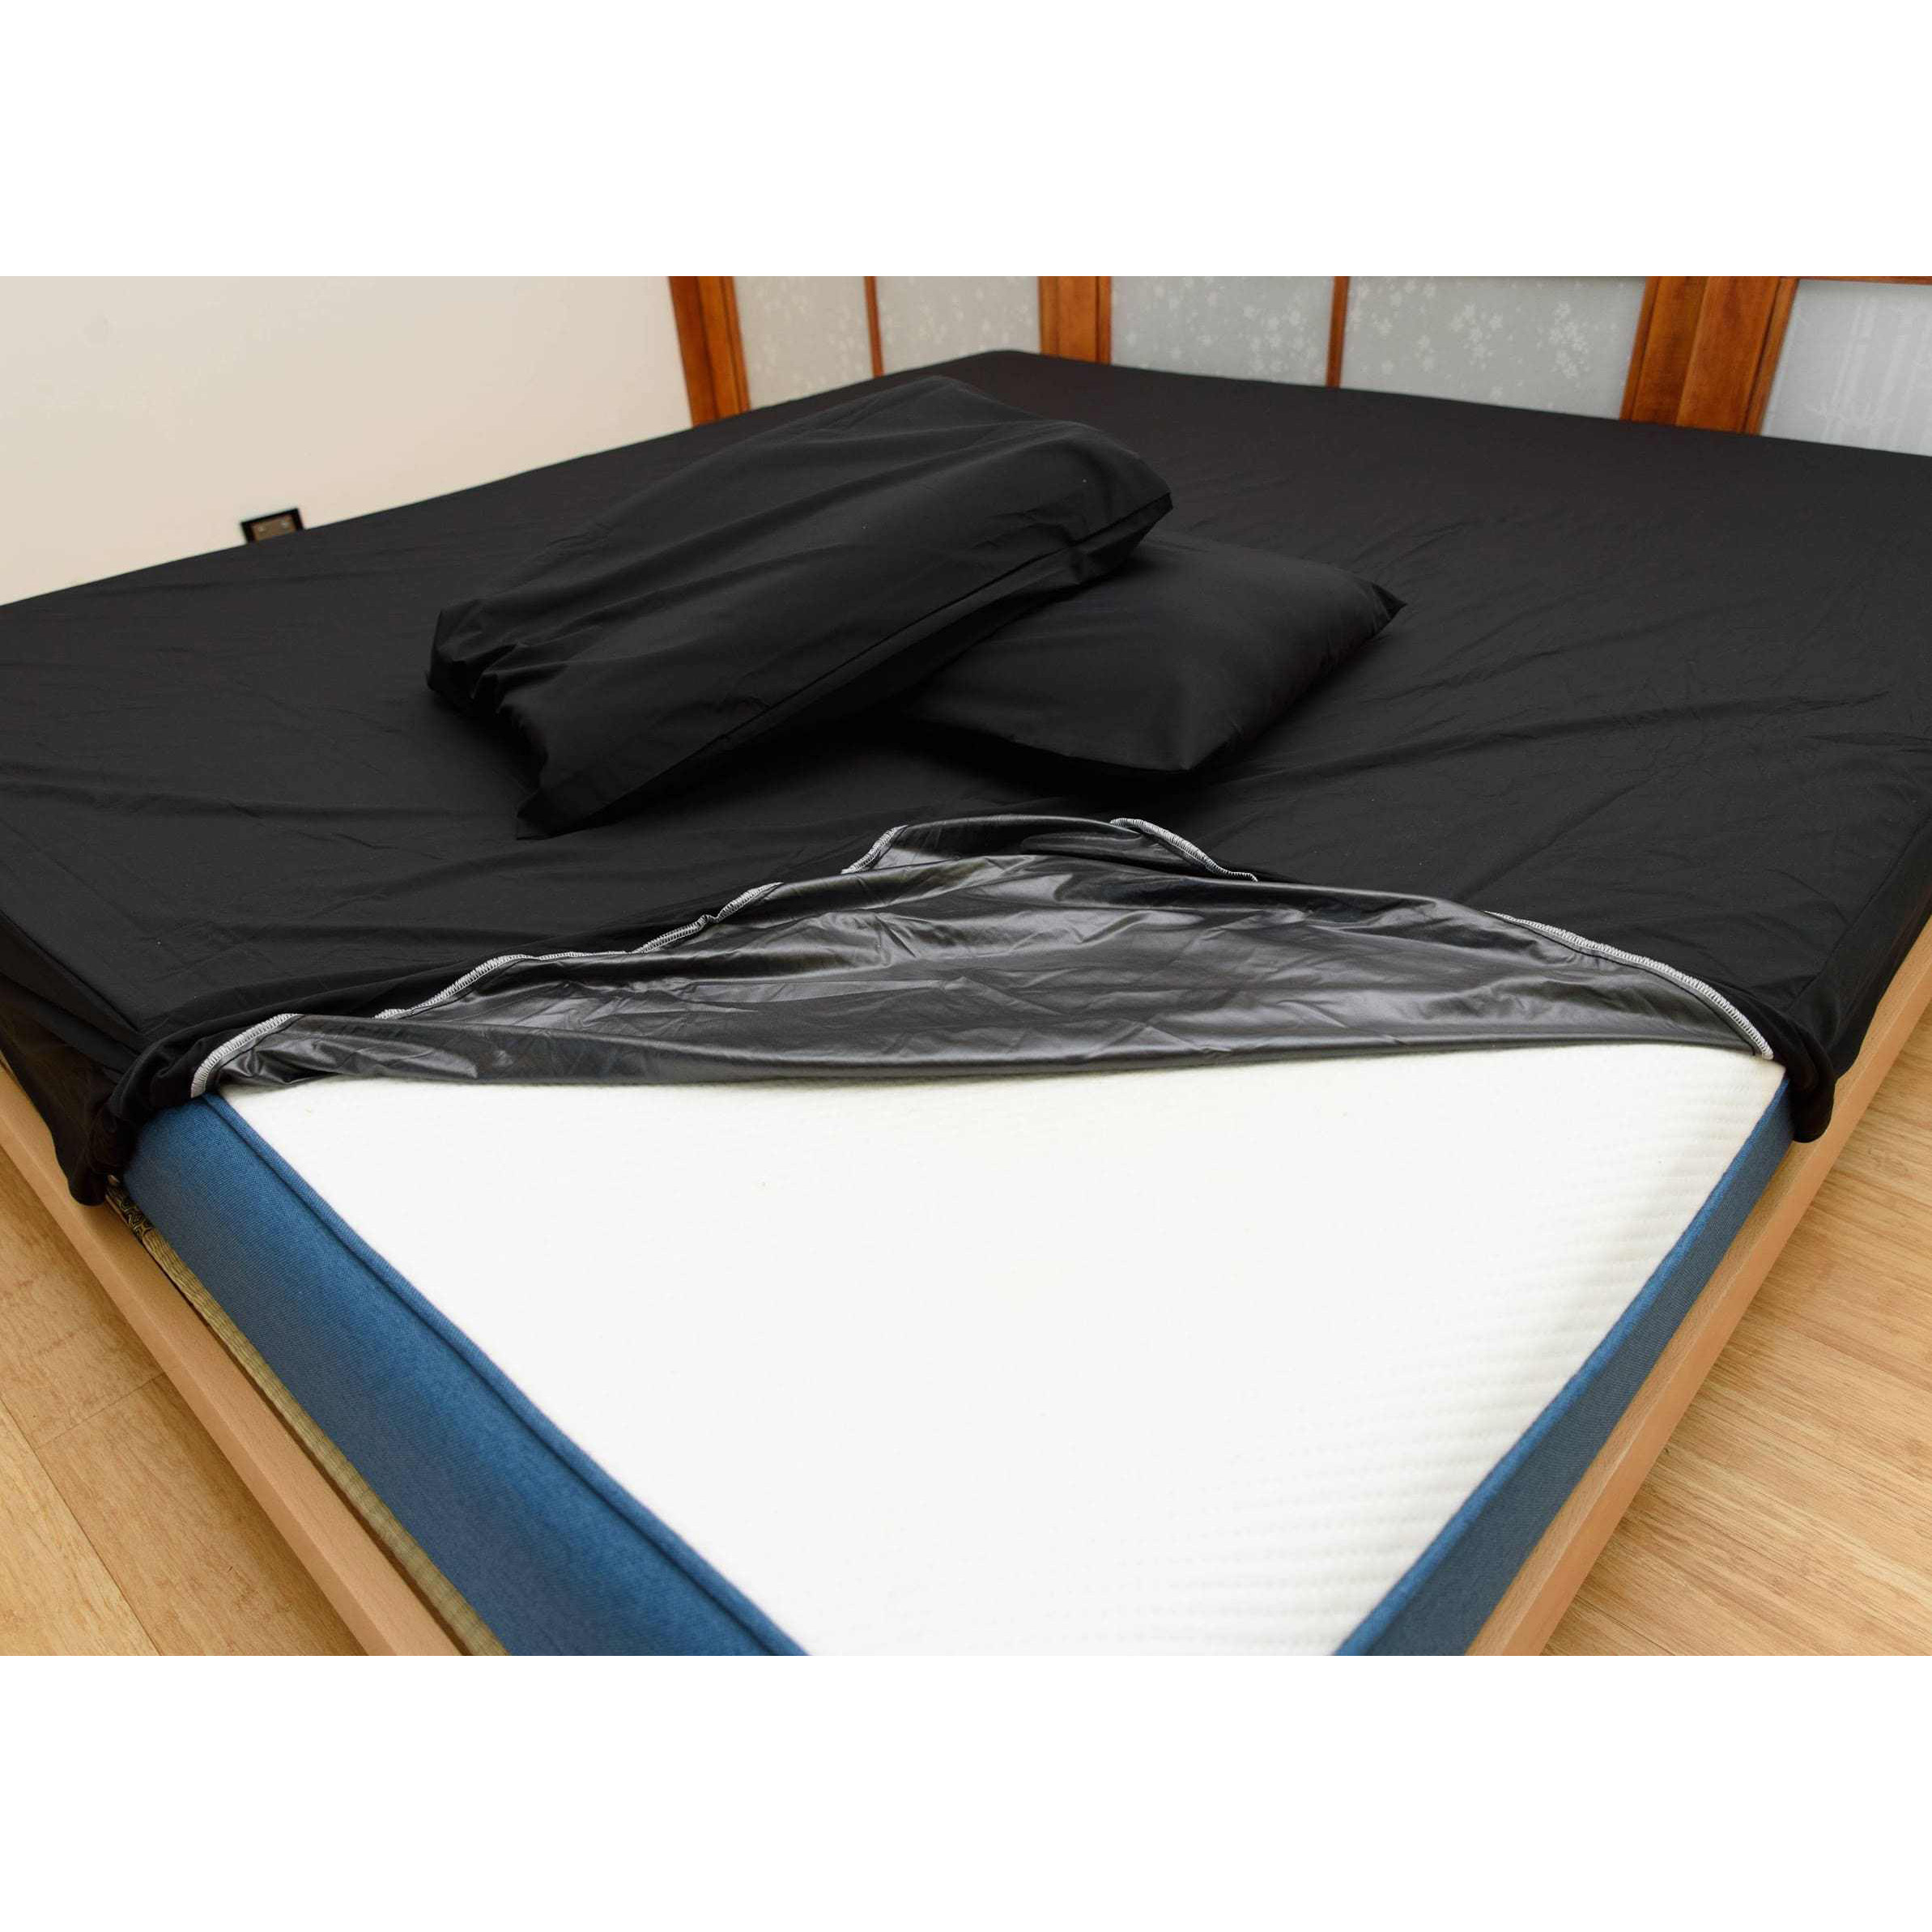 Waterproof Bed Sheet Covering your sleeping sheets